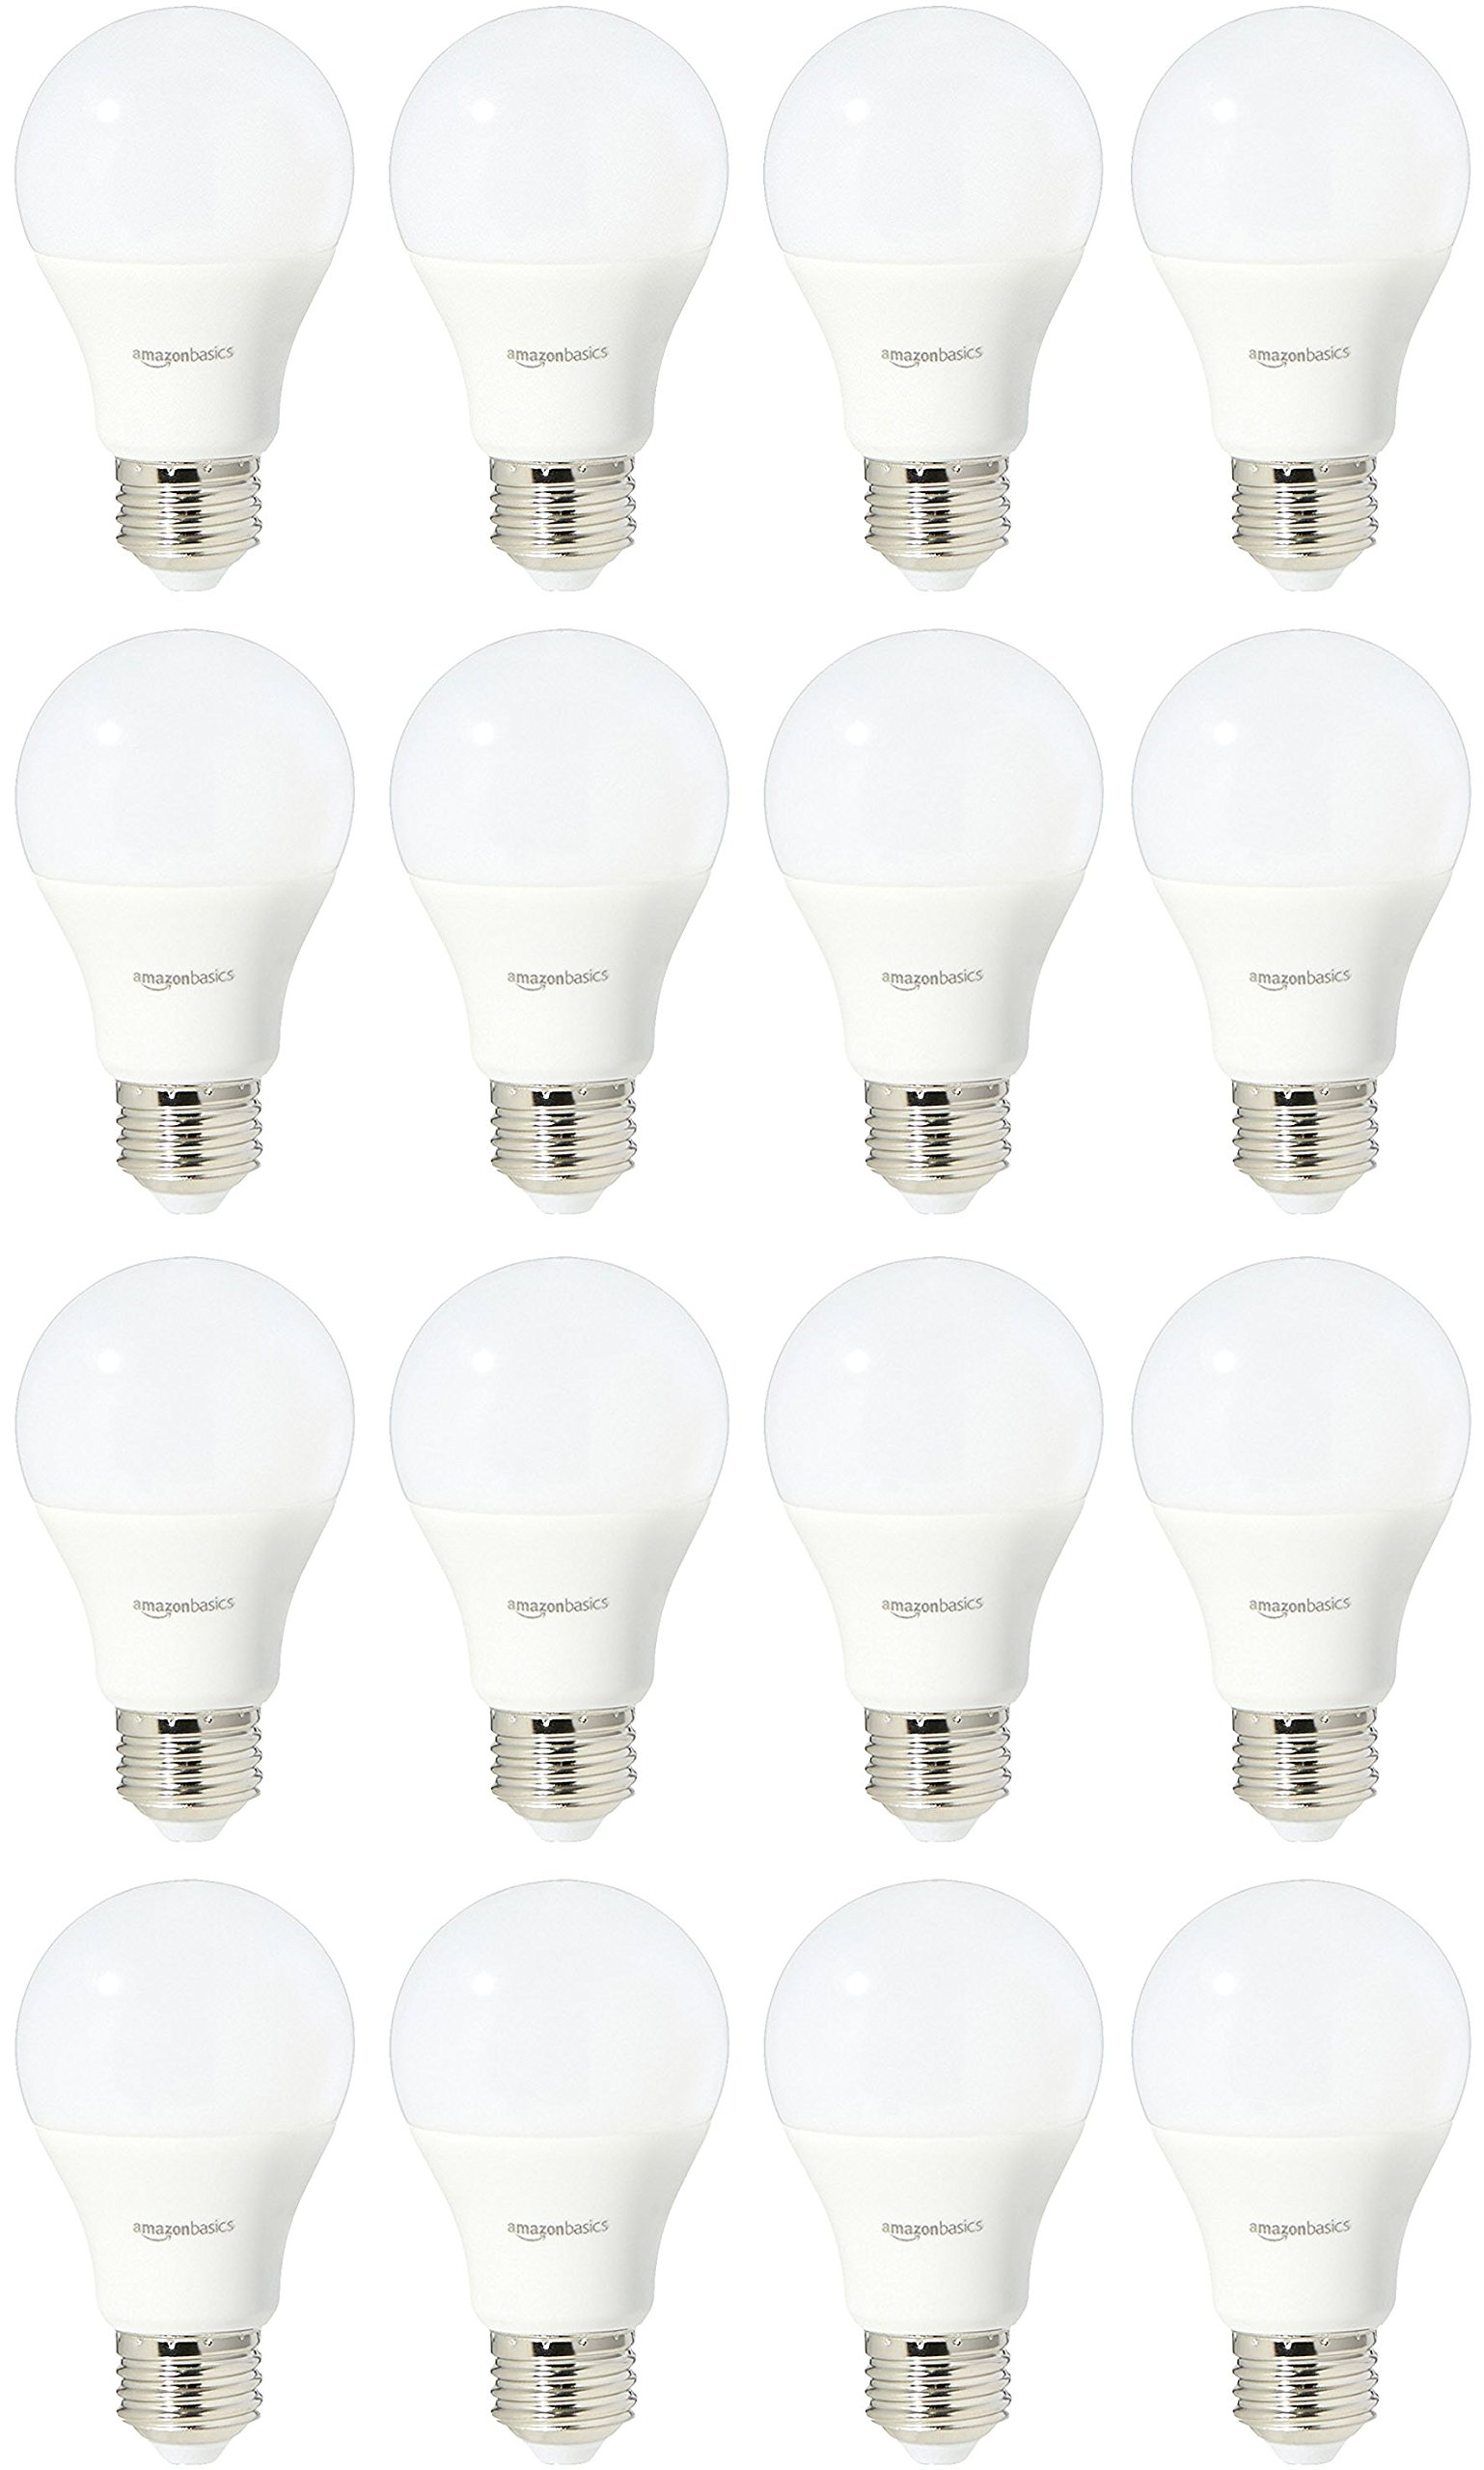 AmazonBasics 60 Watt 15,000 Hours Dimmable 800 Lumens LED Light Bulb - Pack of 16, Daylight by AmazonBasics (Image #1)